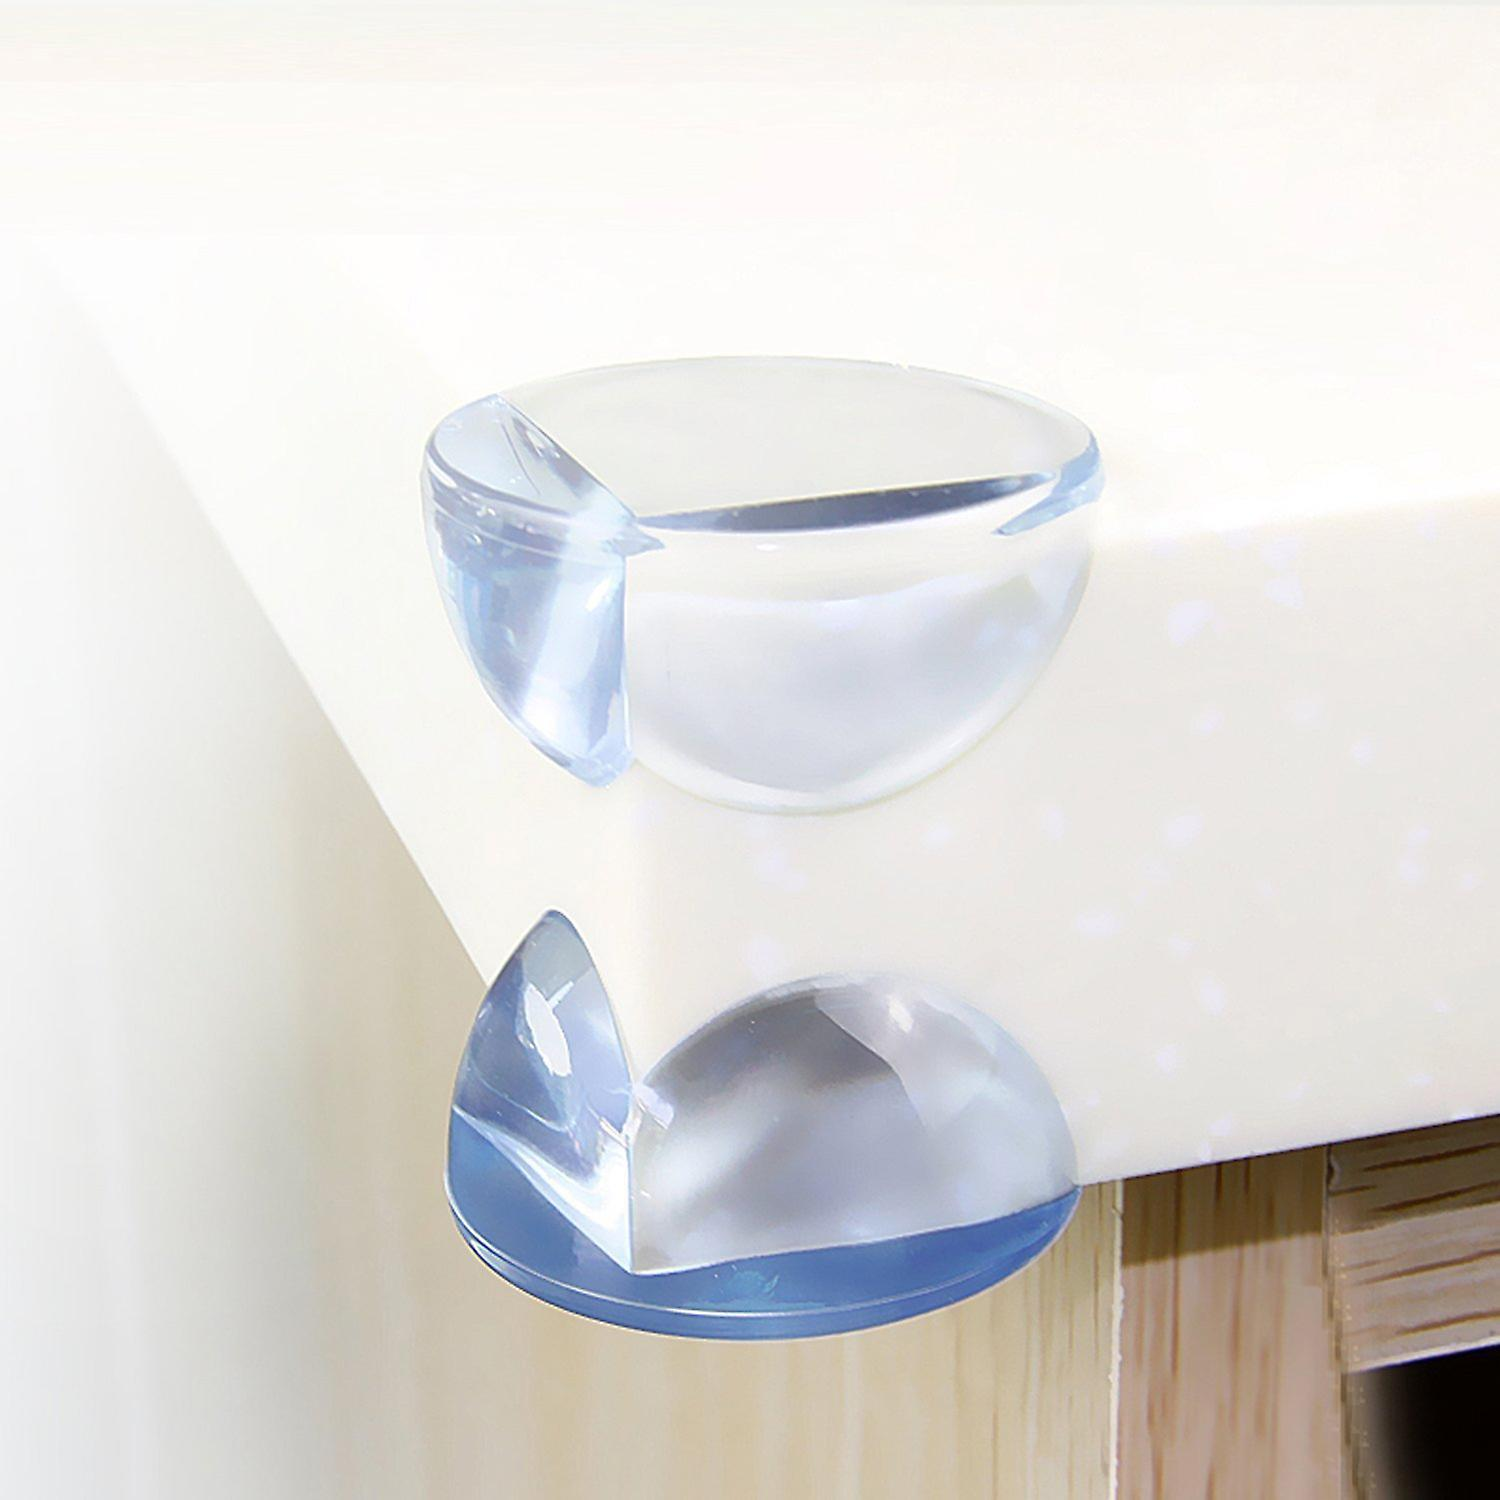 20x Transparent Table Corner Protectors - Safety Corners Protectors Guards Table Guards for Child and Baby 20pcs Large Clear